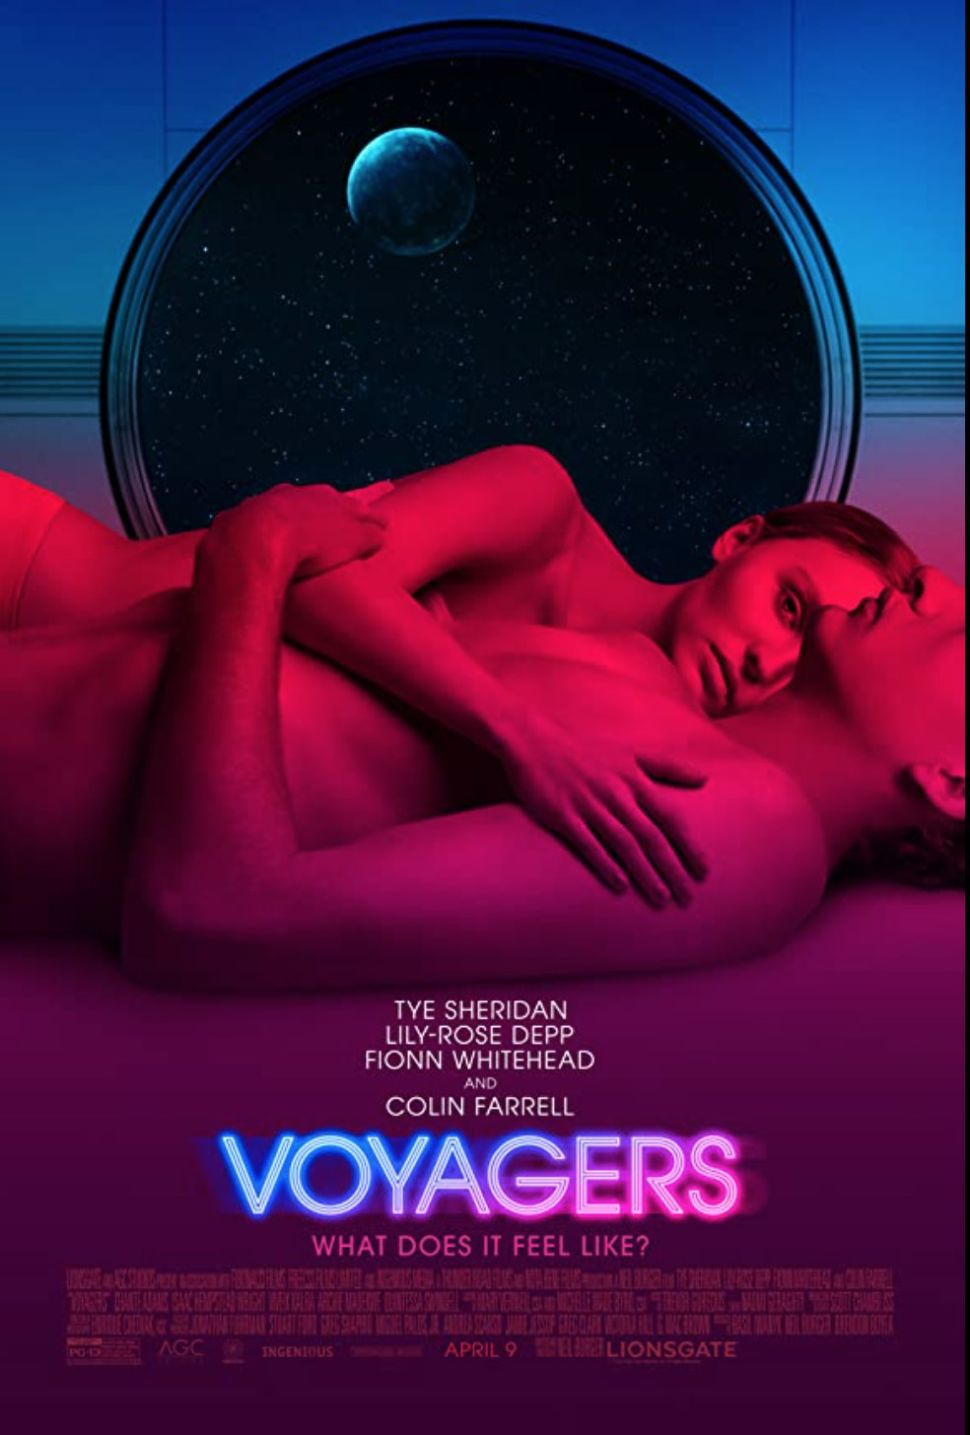 Panic and paranoia strike in 1st trailer for new sci-fi thriller 'Voyagers'